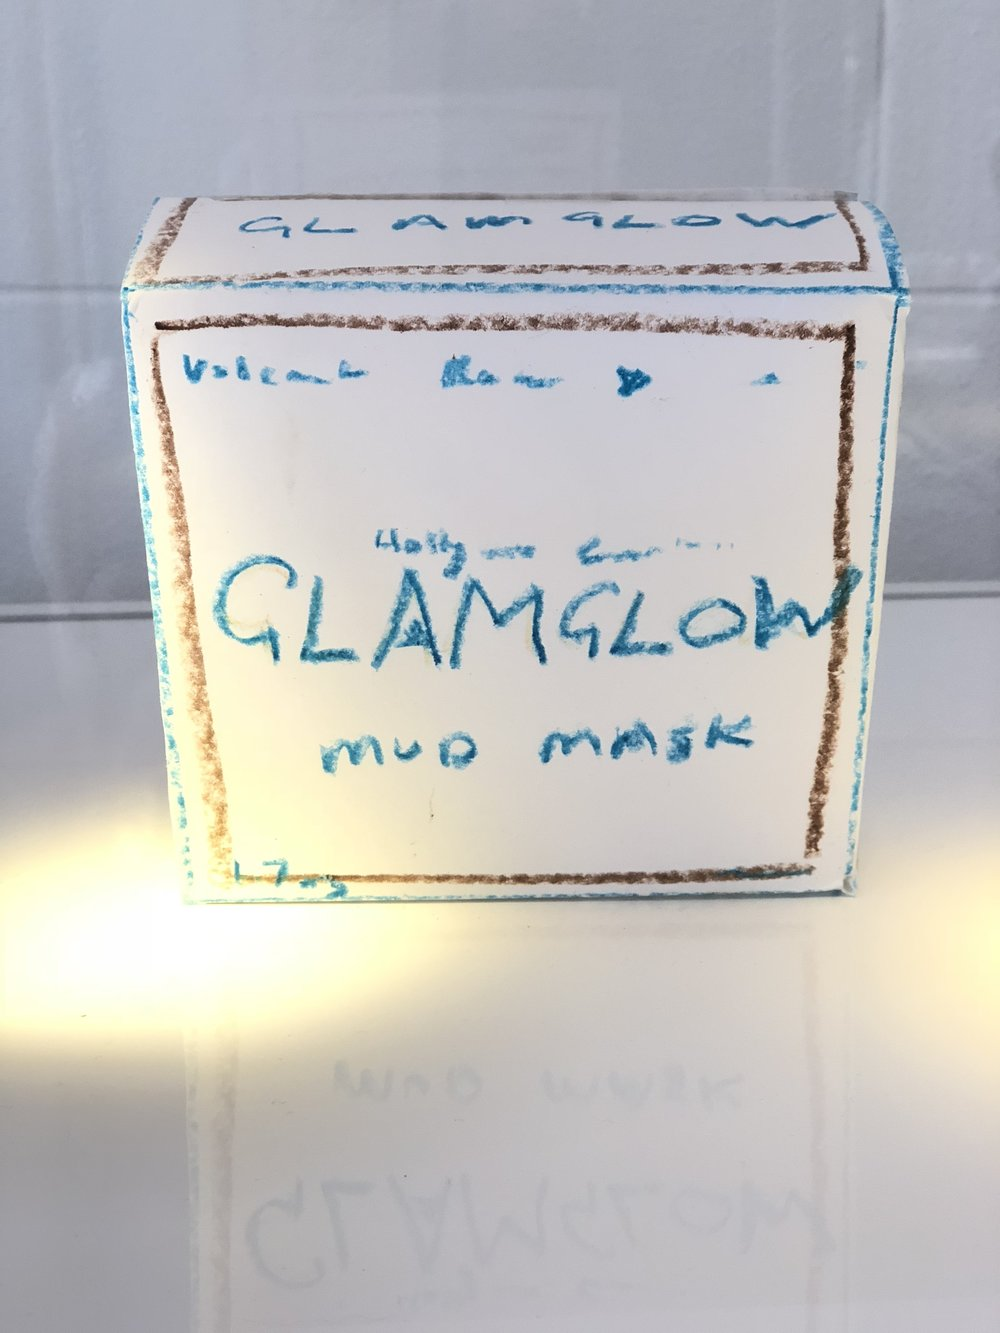 An early packaging prototype courtesy of Shannon and Glenn Dellimore's daughter